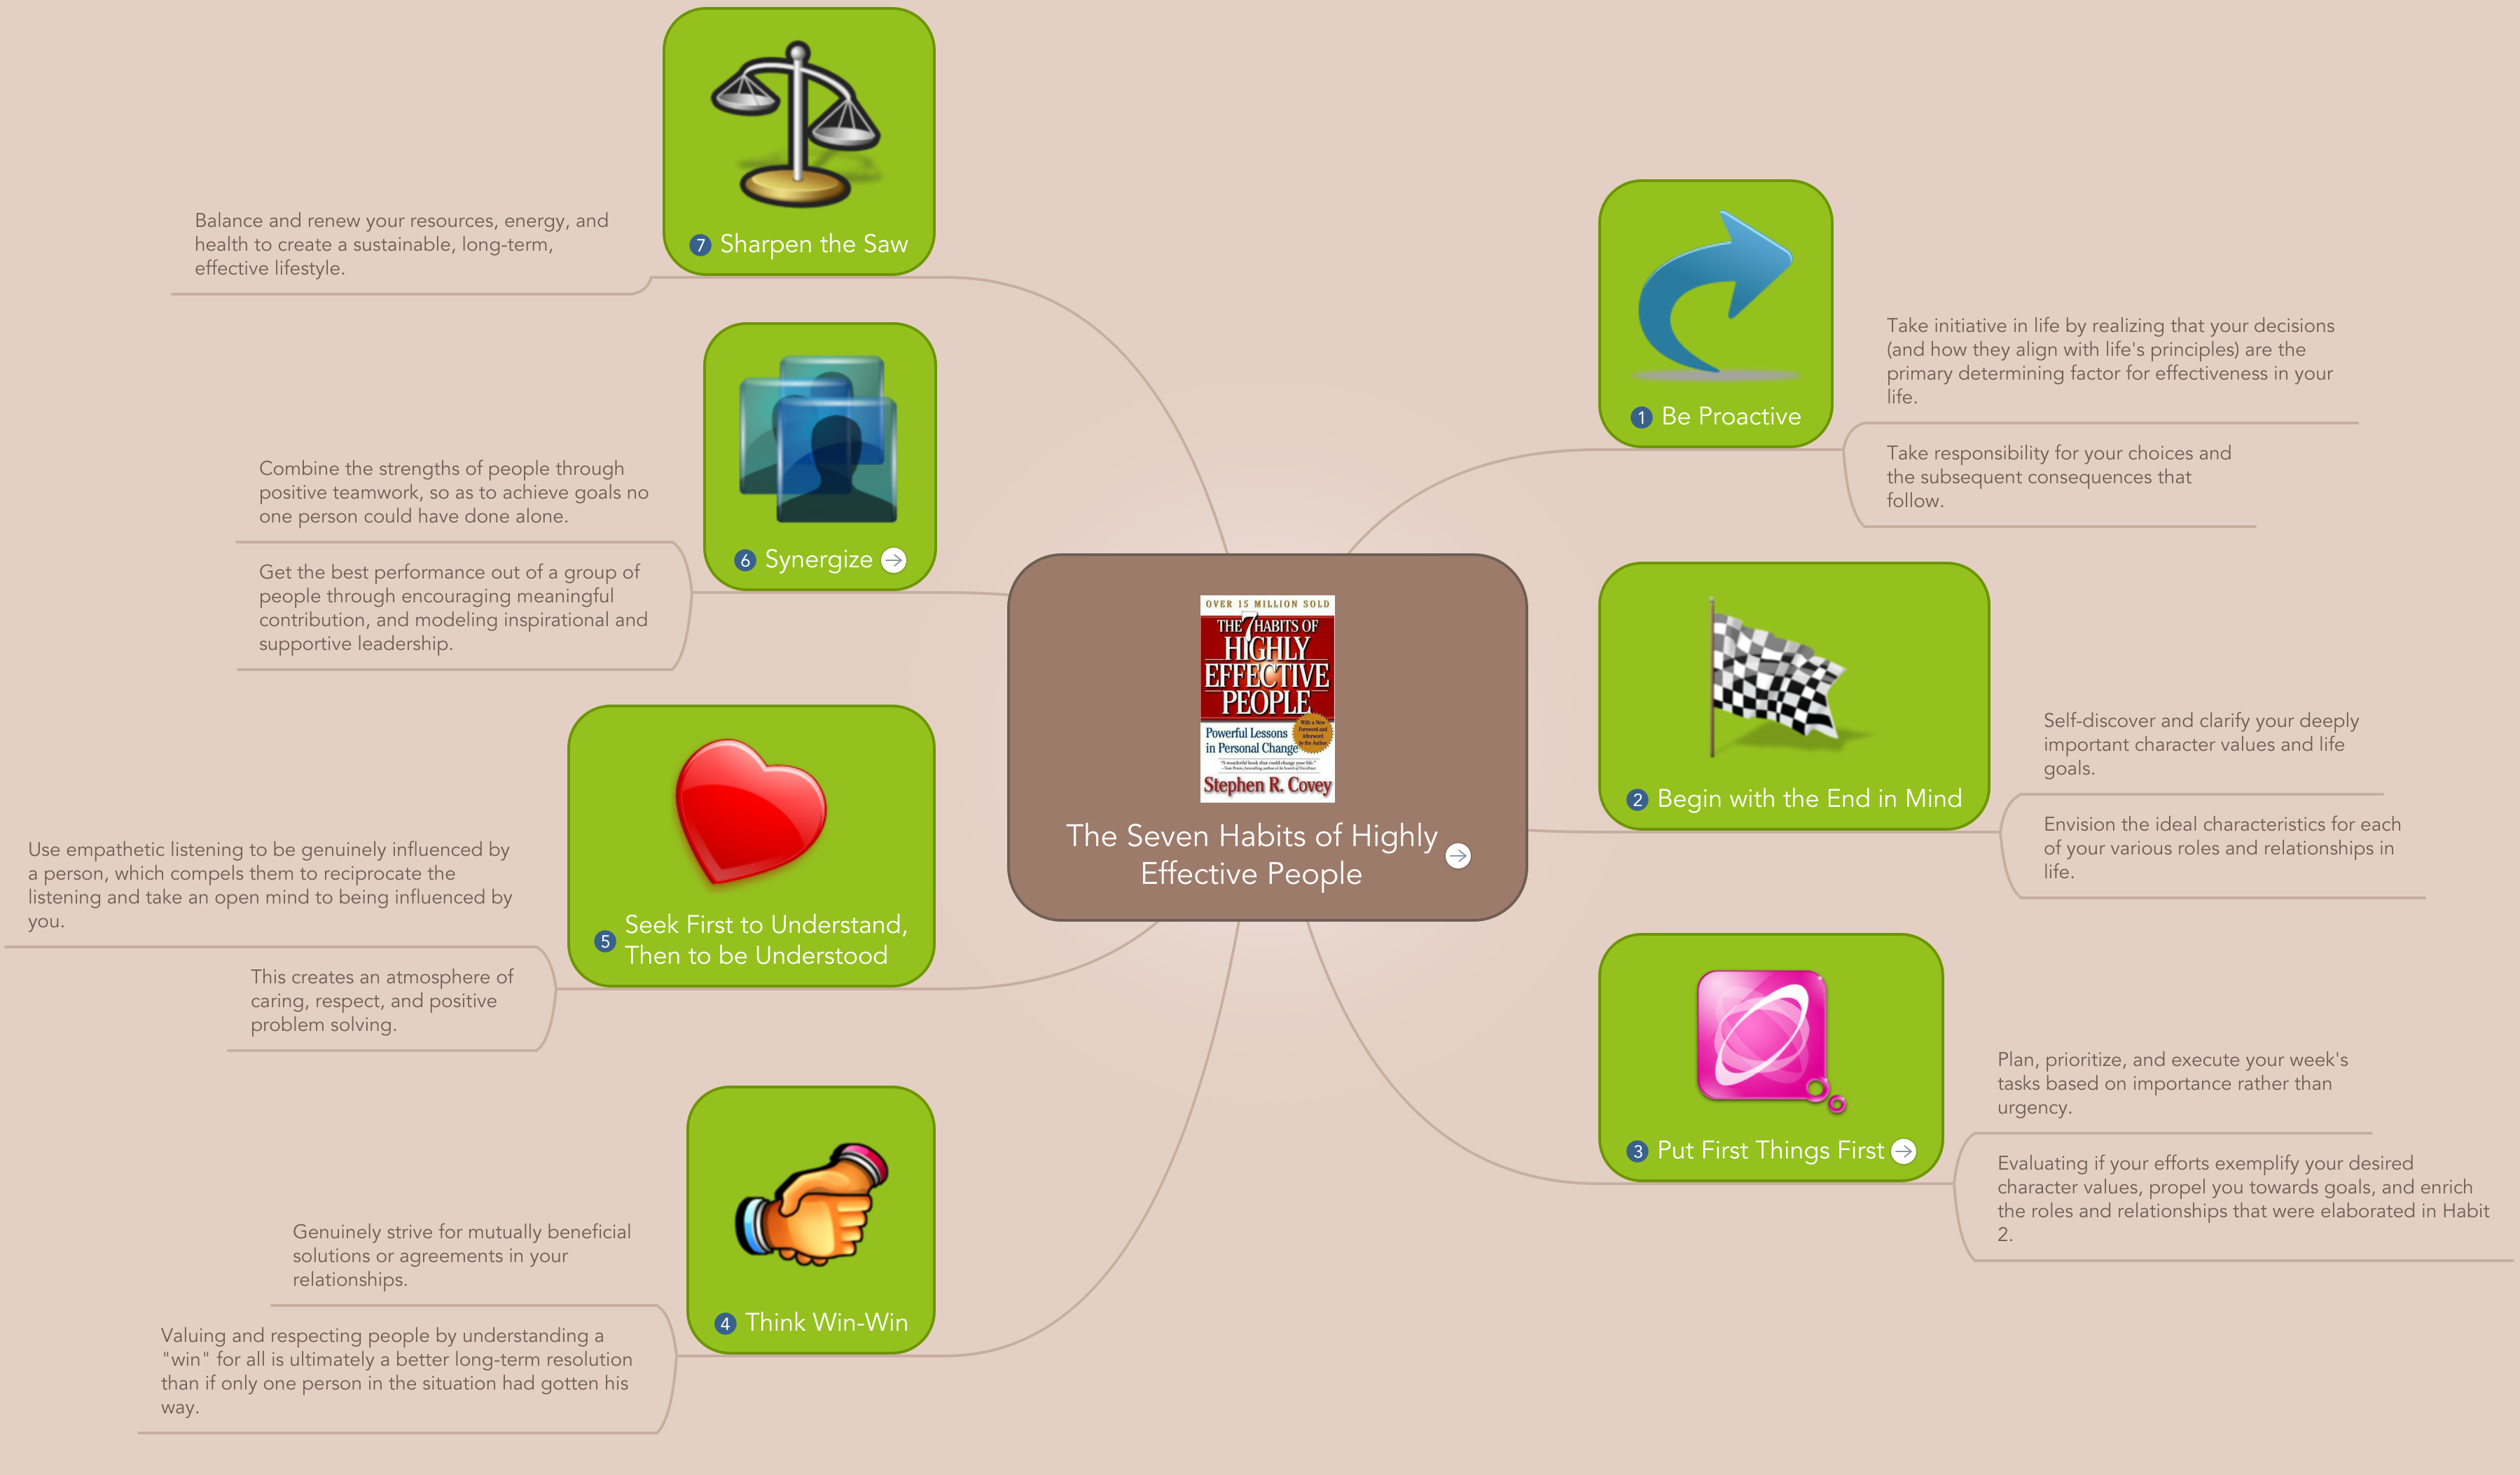 Mind map: The Seven Habits of Highly Effective People